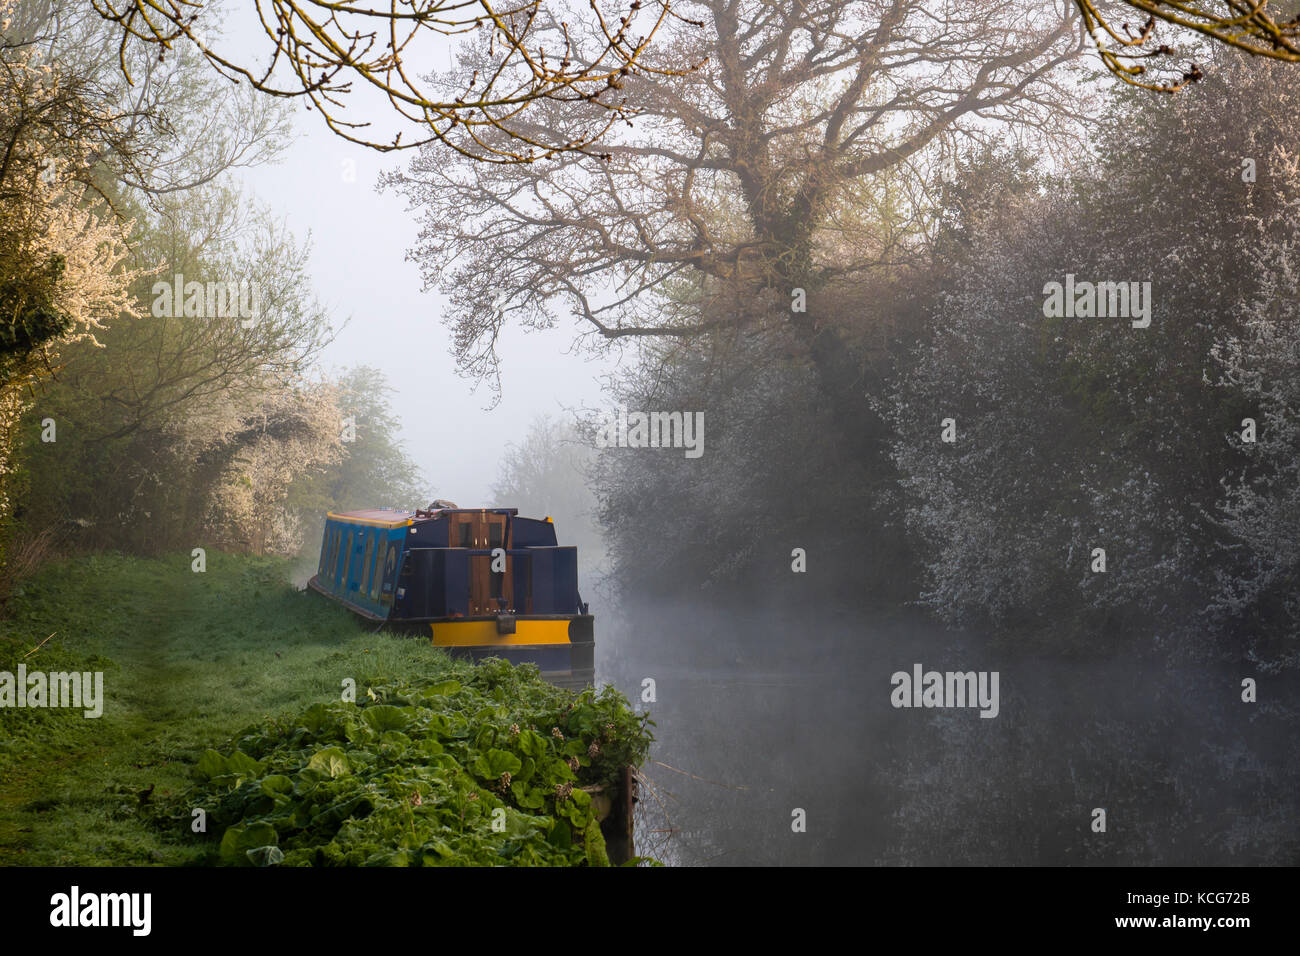 Canal boating Oxford Canal Oxfordshire England early morning mist - Stock Image